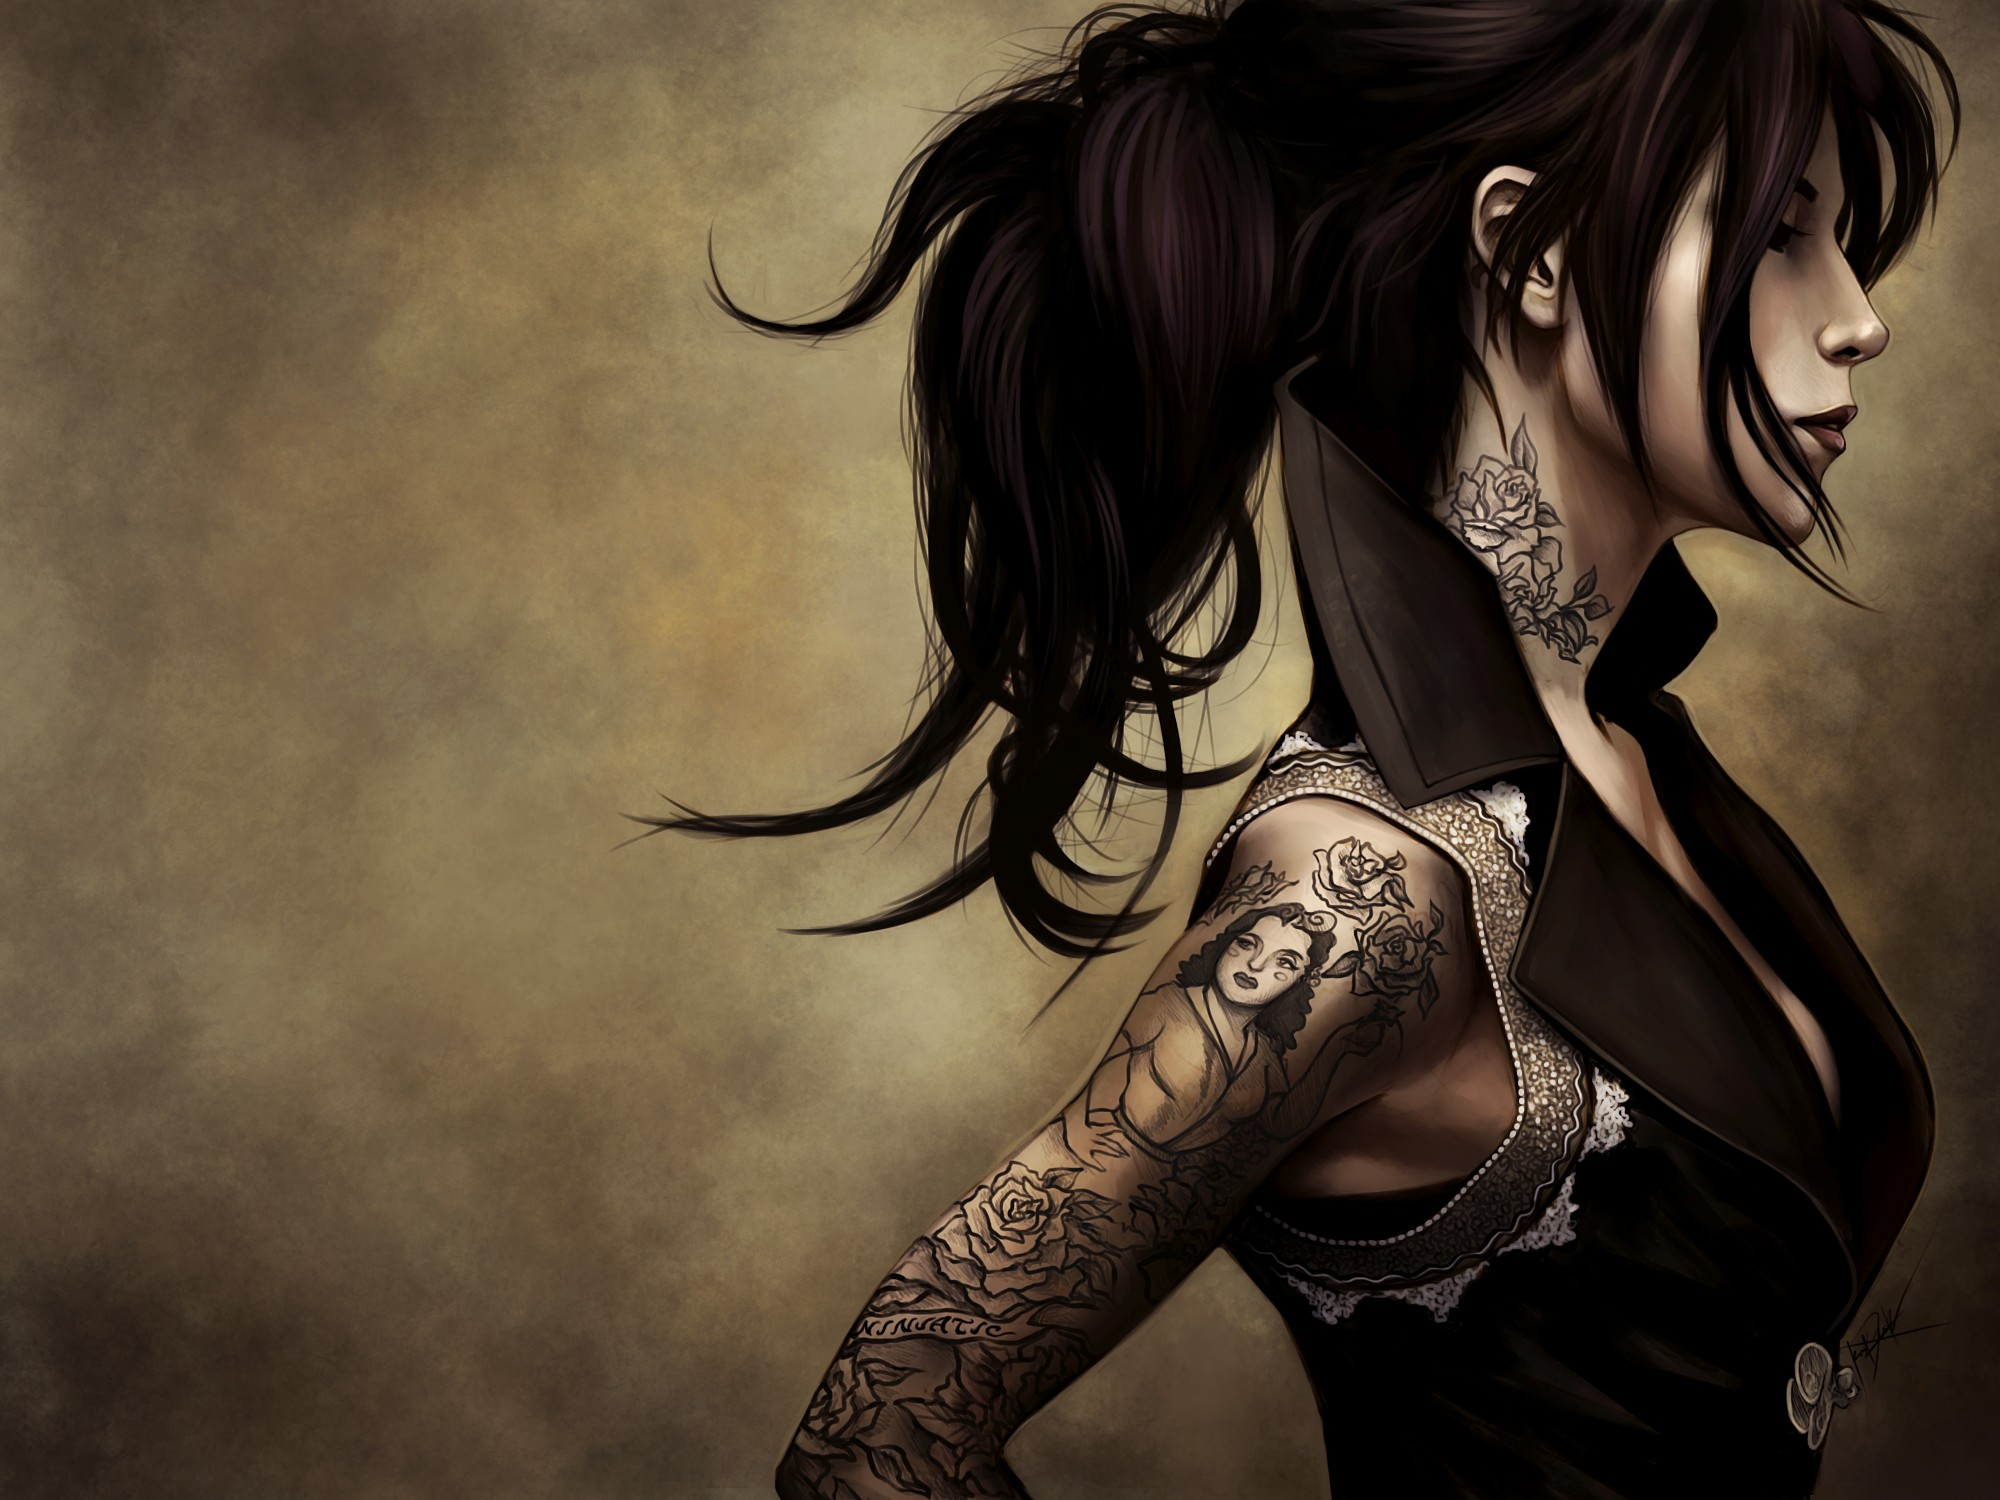 CGI - Women  - Tattoo - Gothic - Woman Wallpaper